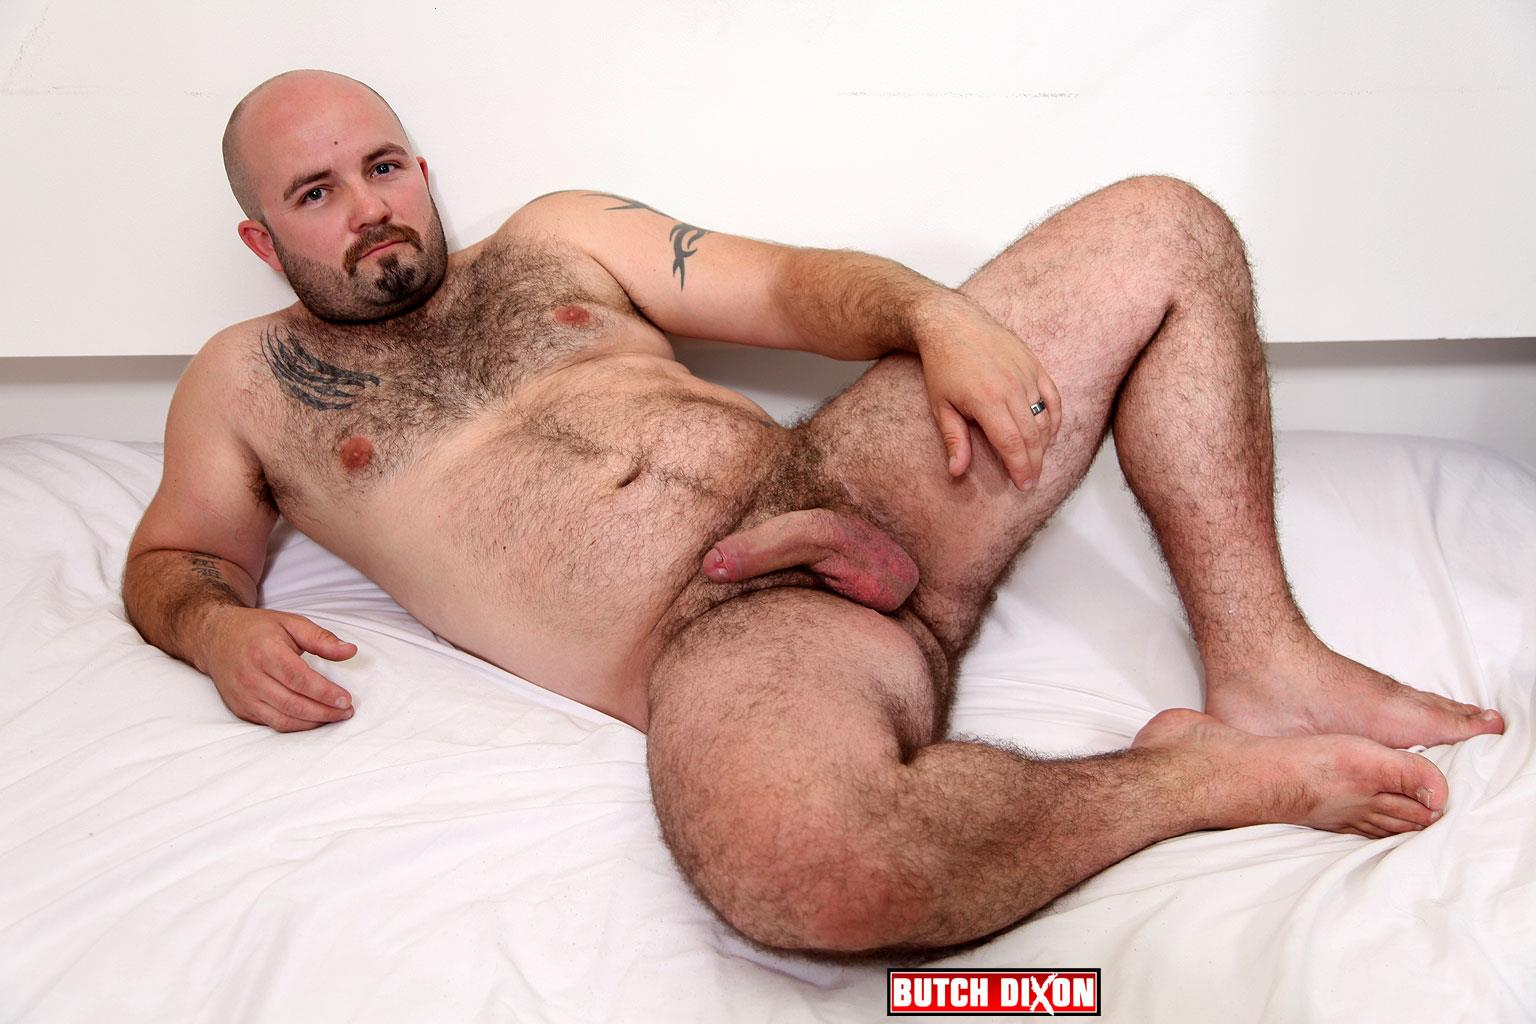 Butch Dixon Tommo Hawk Chubby Hairy Guy Playing With Big Uncut Cock Amateur Gay Porn 09 Hairy Chubby Bear Plays With His Thick Uncut Cock And Big Hairy Ass